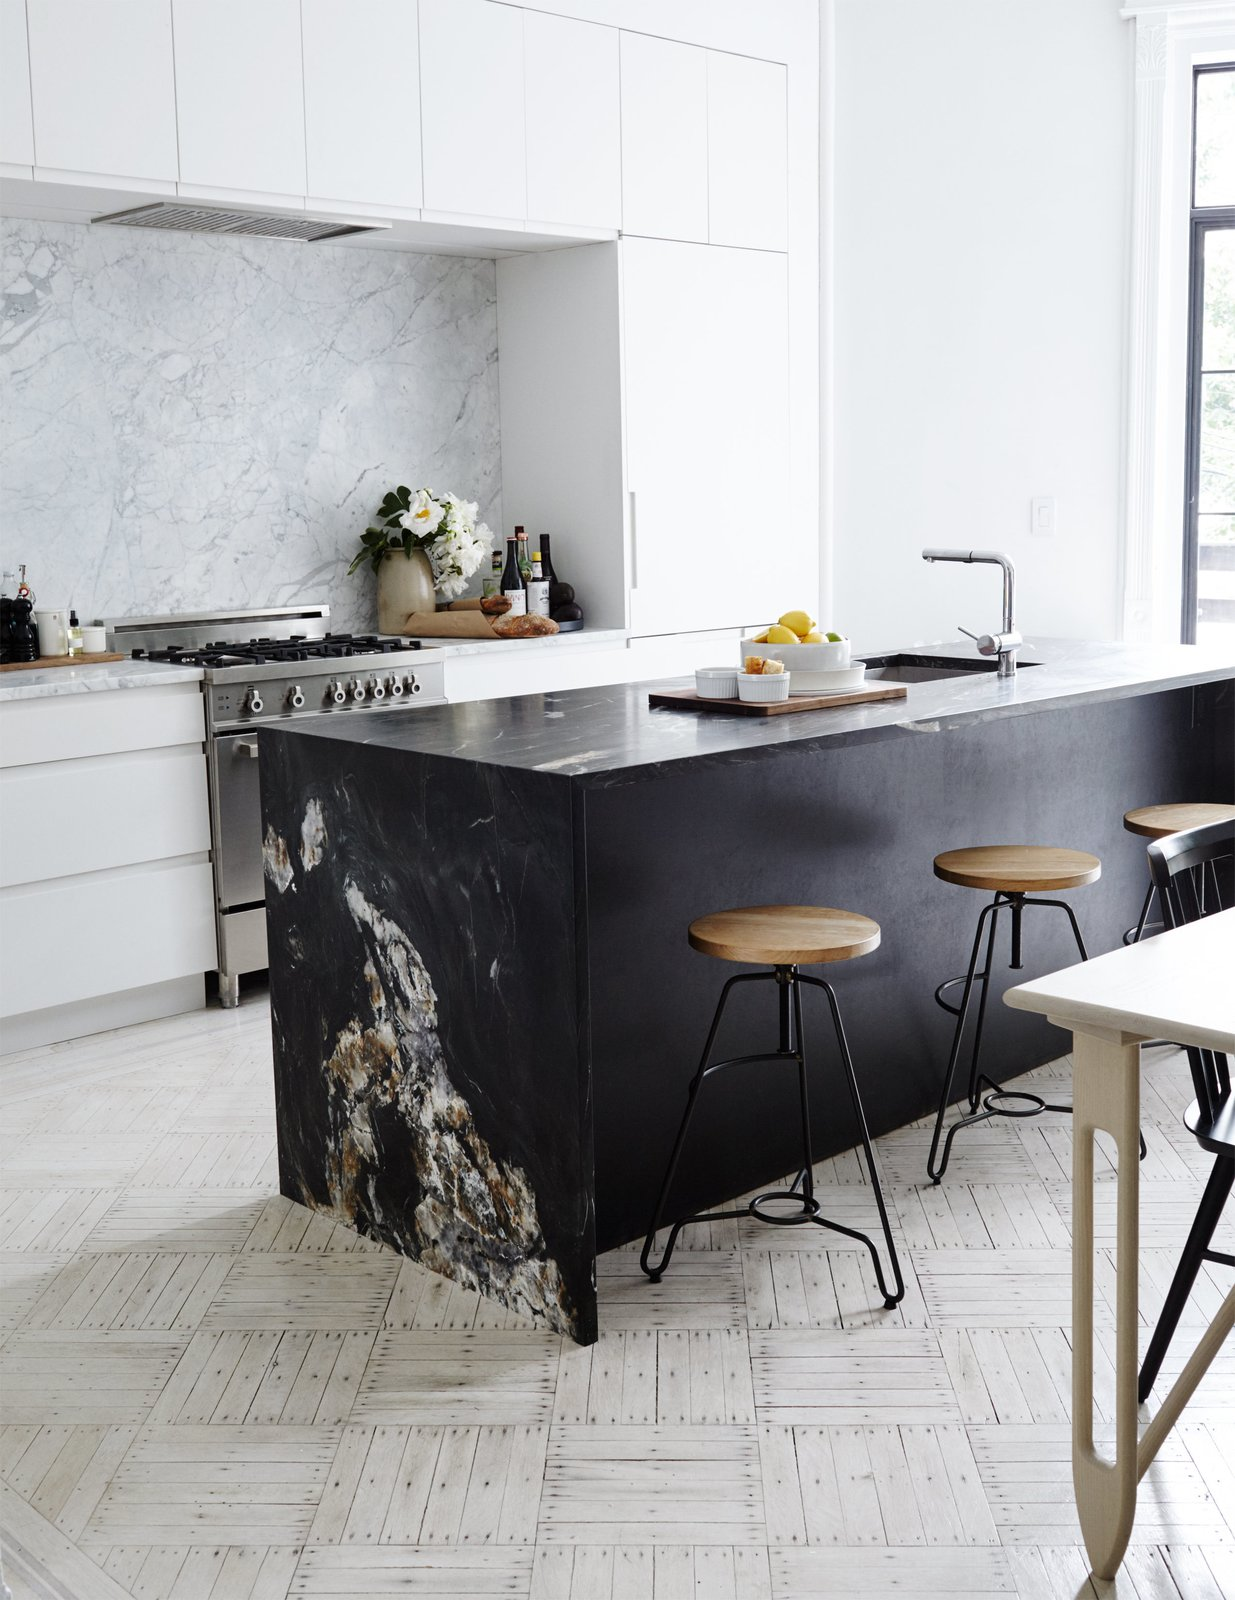 The couple removed an ornamental fireplace mantle in the kitchen, one of few period details they decided not to keep, due to its size. Matte-black quartzite slabs from ABC Worldwide Stone form the kitchen island, which is outfitted with Blanco fixtures; a white Carrara backsplash frames the Bertazzoni range and Dunsmuir cabinetry. The oak-and-steel bar stools are from ABC Carpet & Home. Tagged: Kitchen, White Cabinet, Marble Counter, Marble Backsplashe, and Range.  Kitchen by Lara Deam from A Fashionable Couple Remake Their Brooklyn Brownstone with a Sartorial Twist